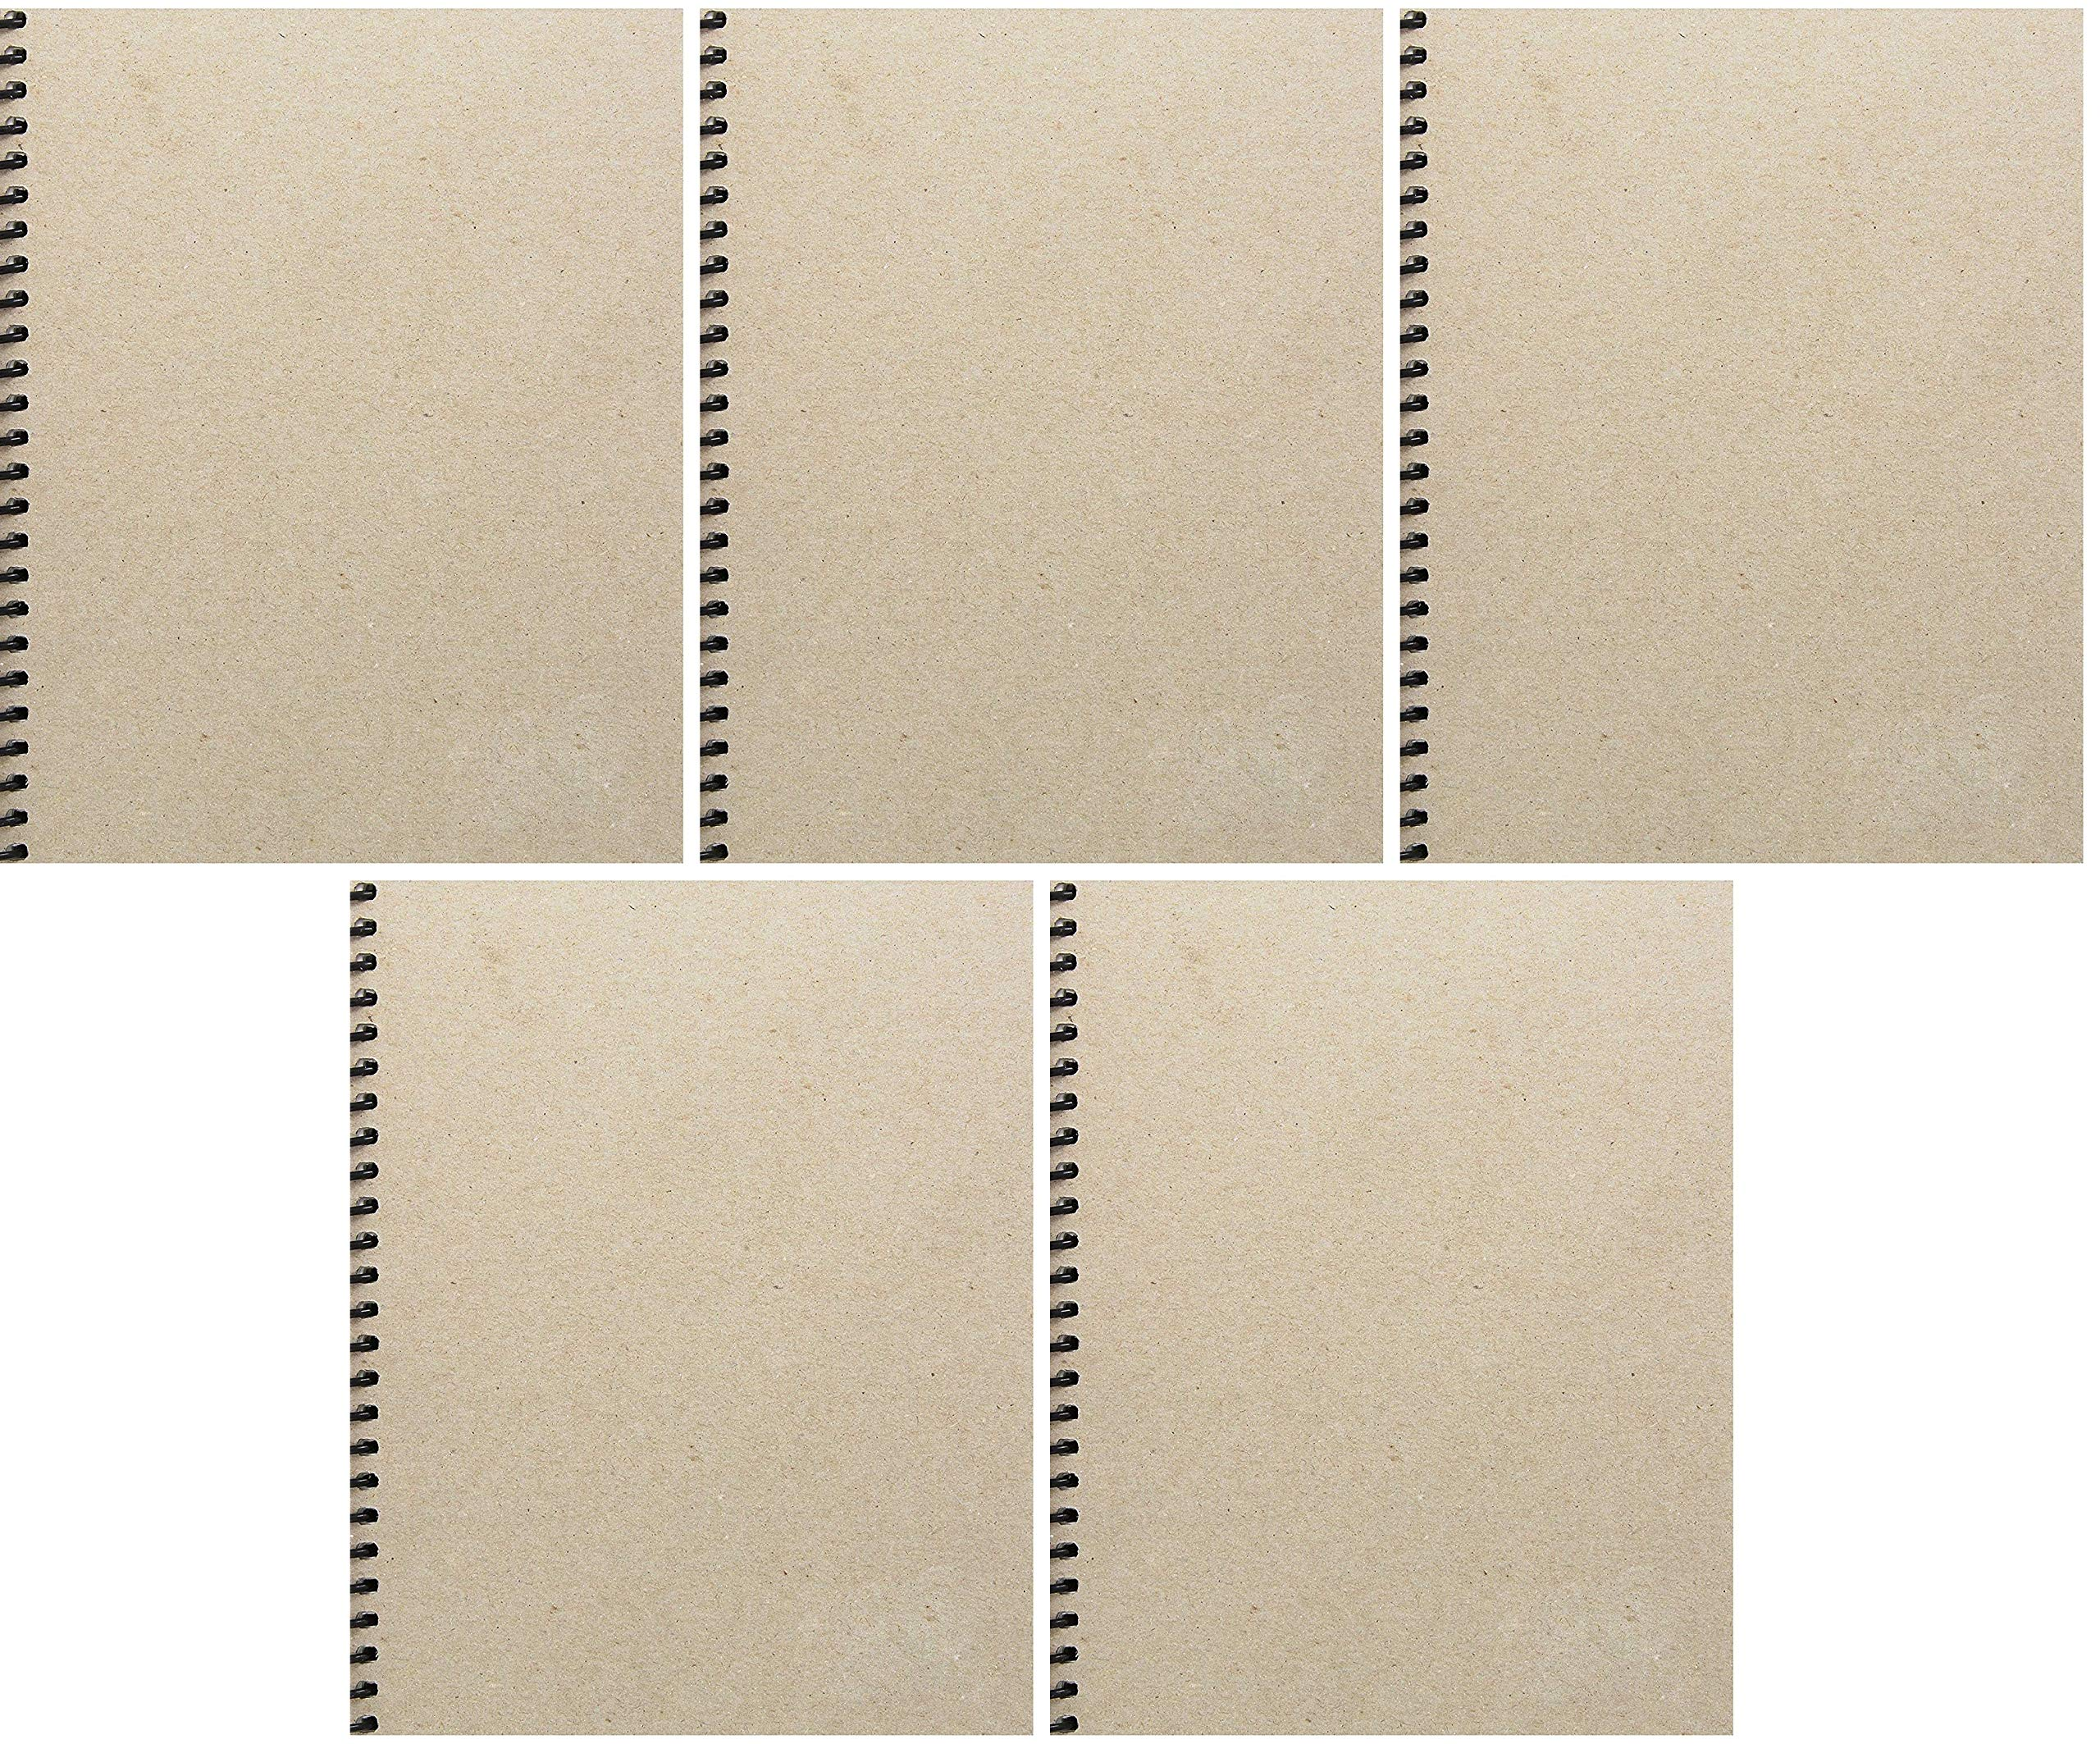 Sax Basic Spiral Binding Sketchbook, 80 lbs, 8 x 10 Inches, 100 Sheets, White (Вundlе оf Fіvе)